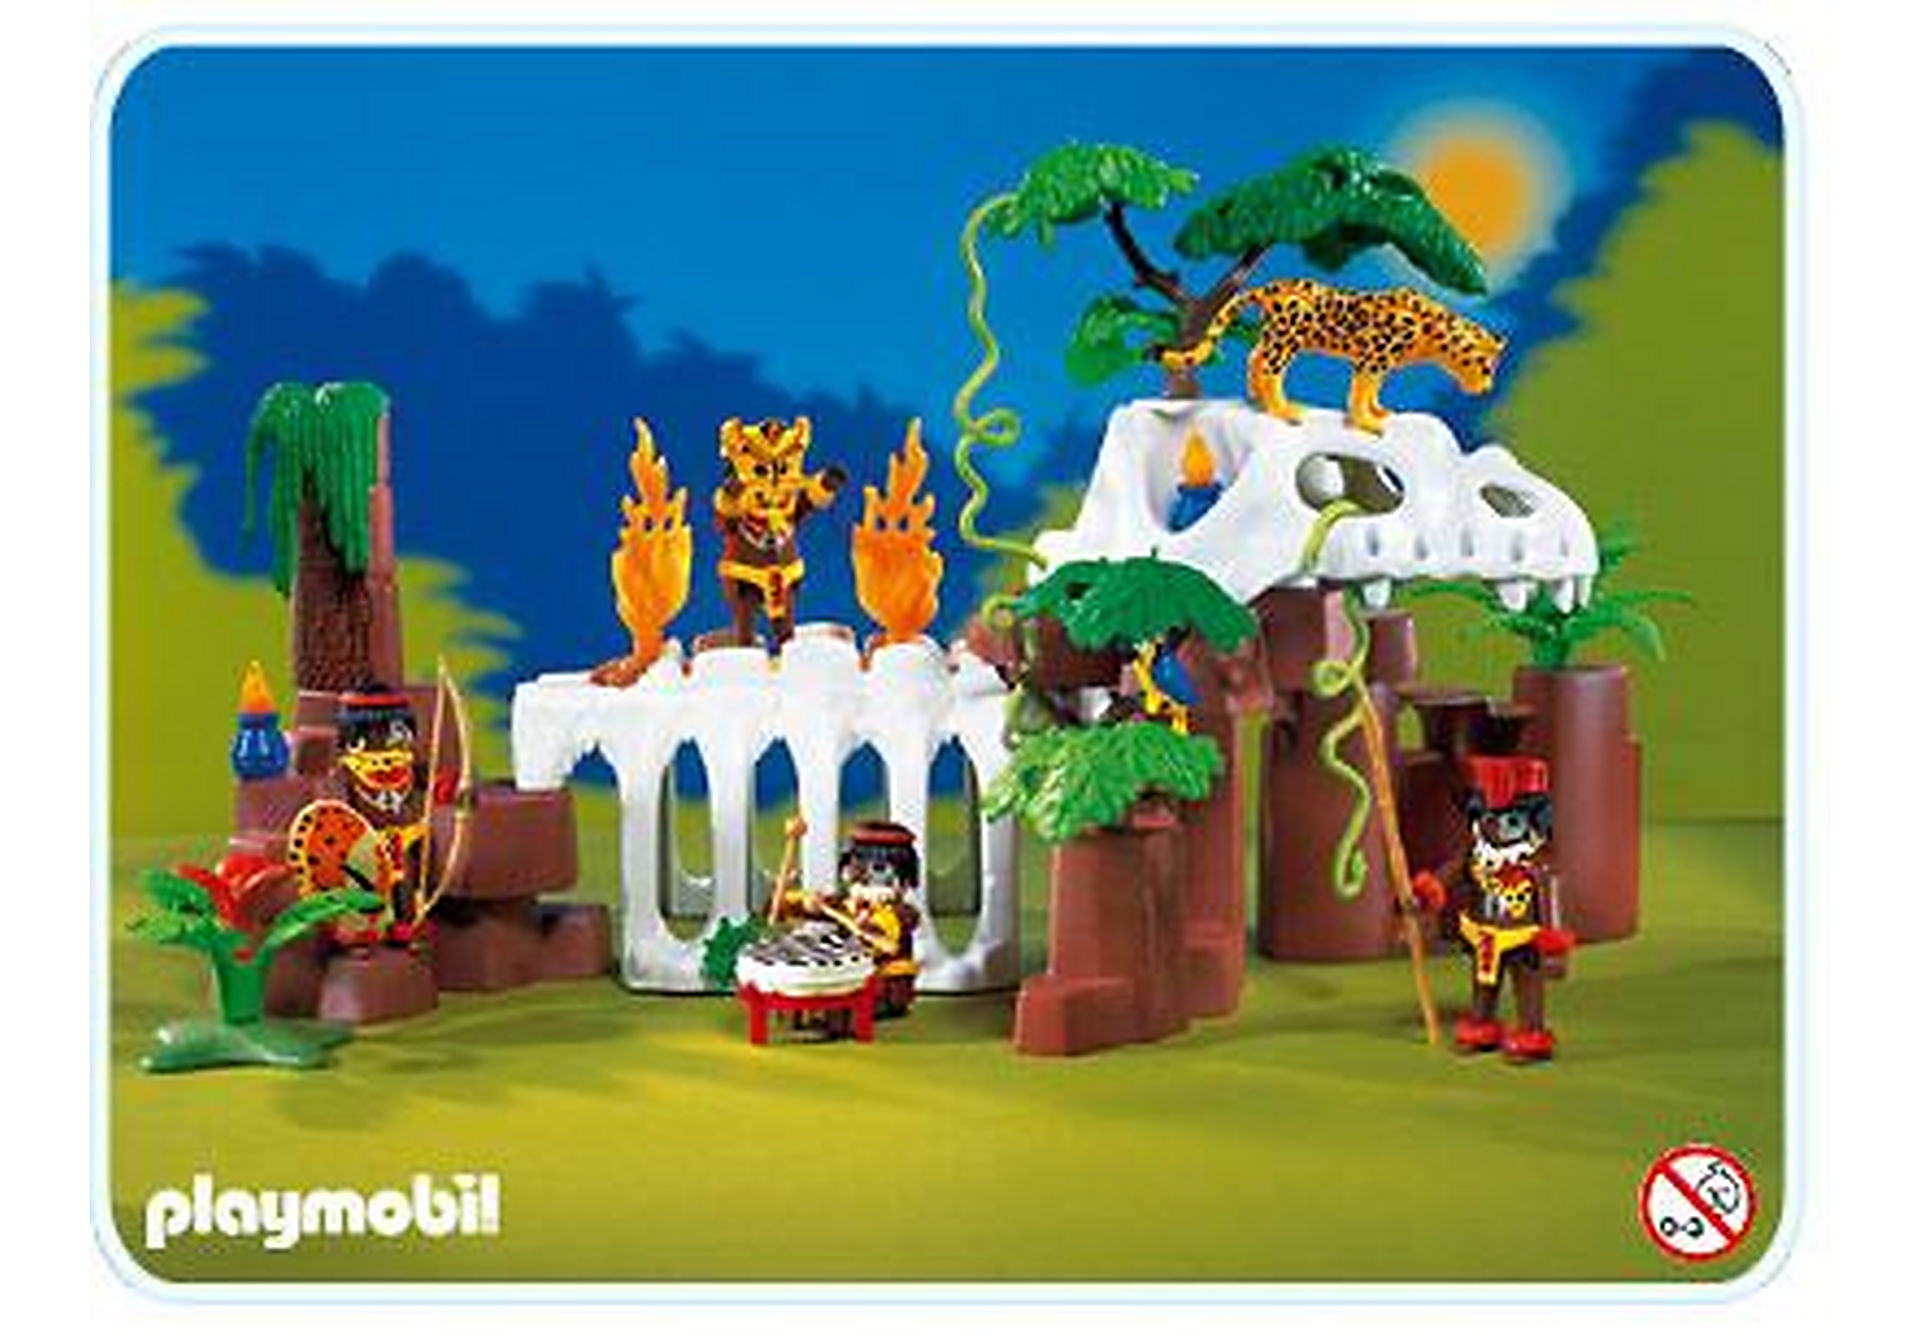 http://media.playmobil.com/i/playmobil/3040-A_product_detail/Skeletthöhle